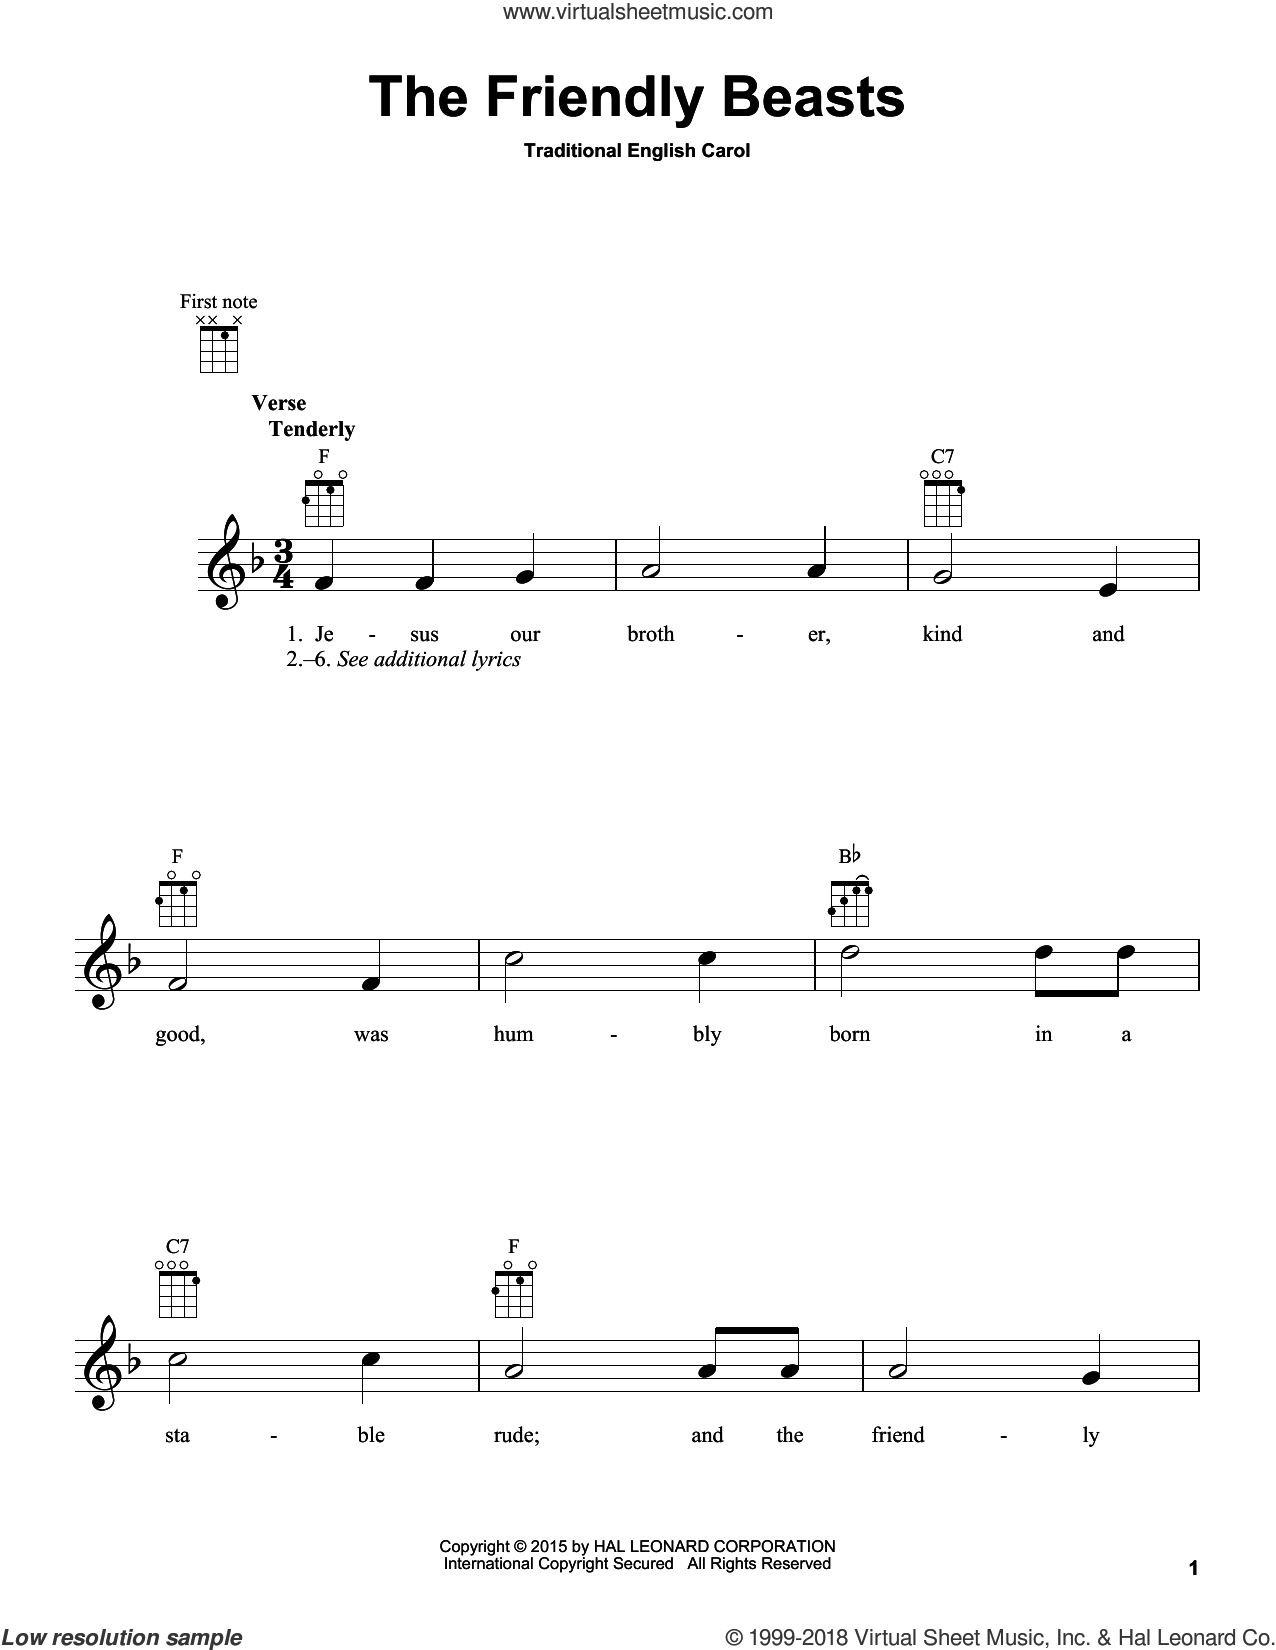 The Friendly Beasts sheet music for ukulele, intermediate skill level